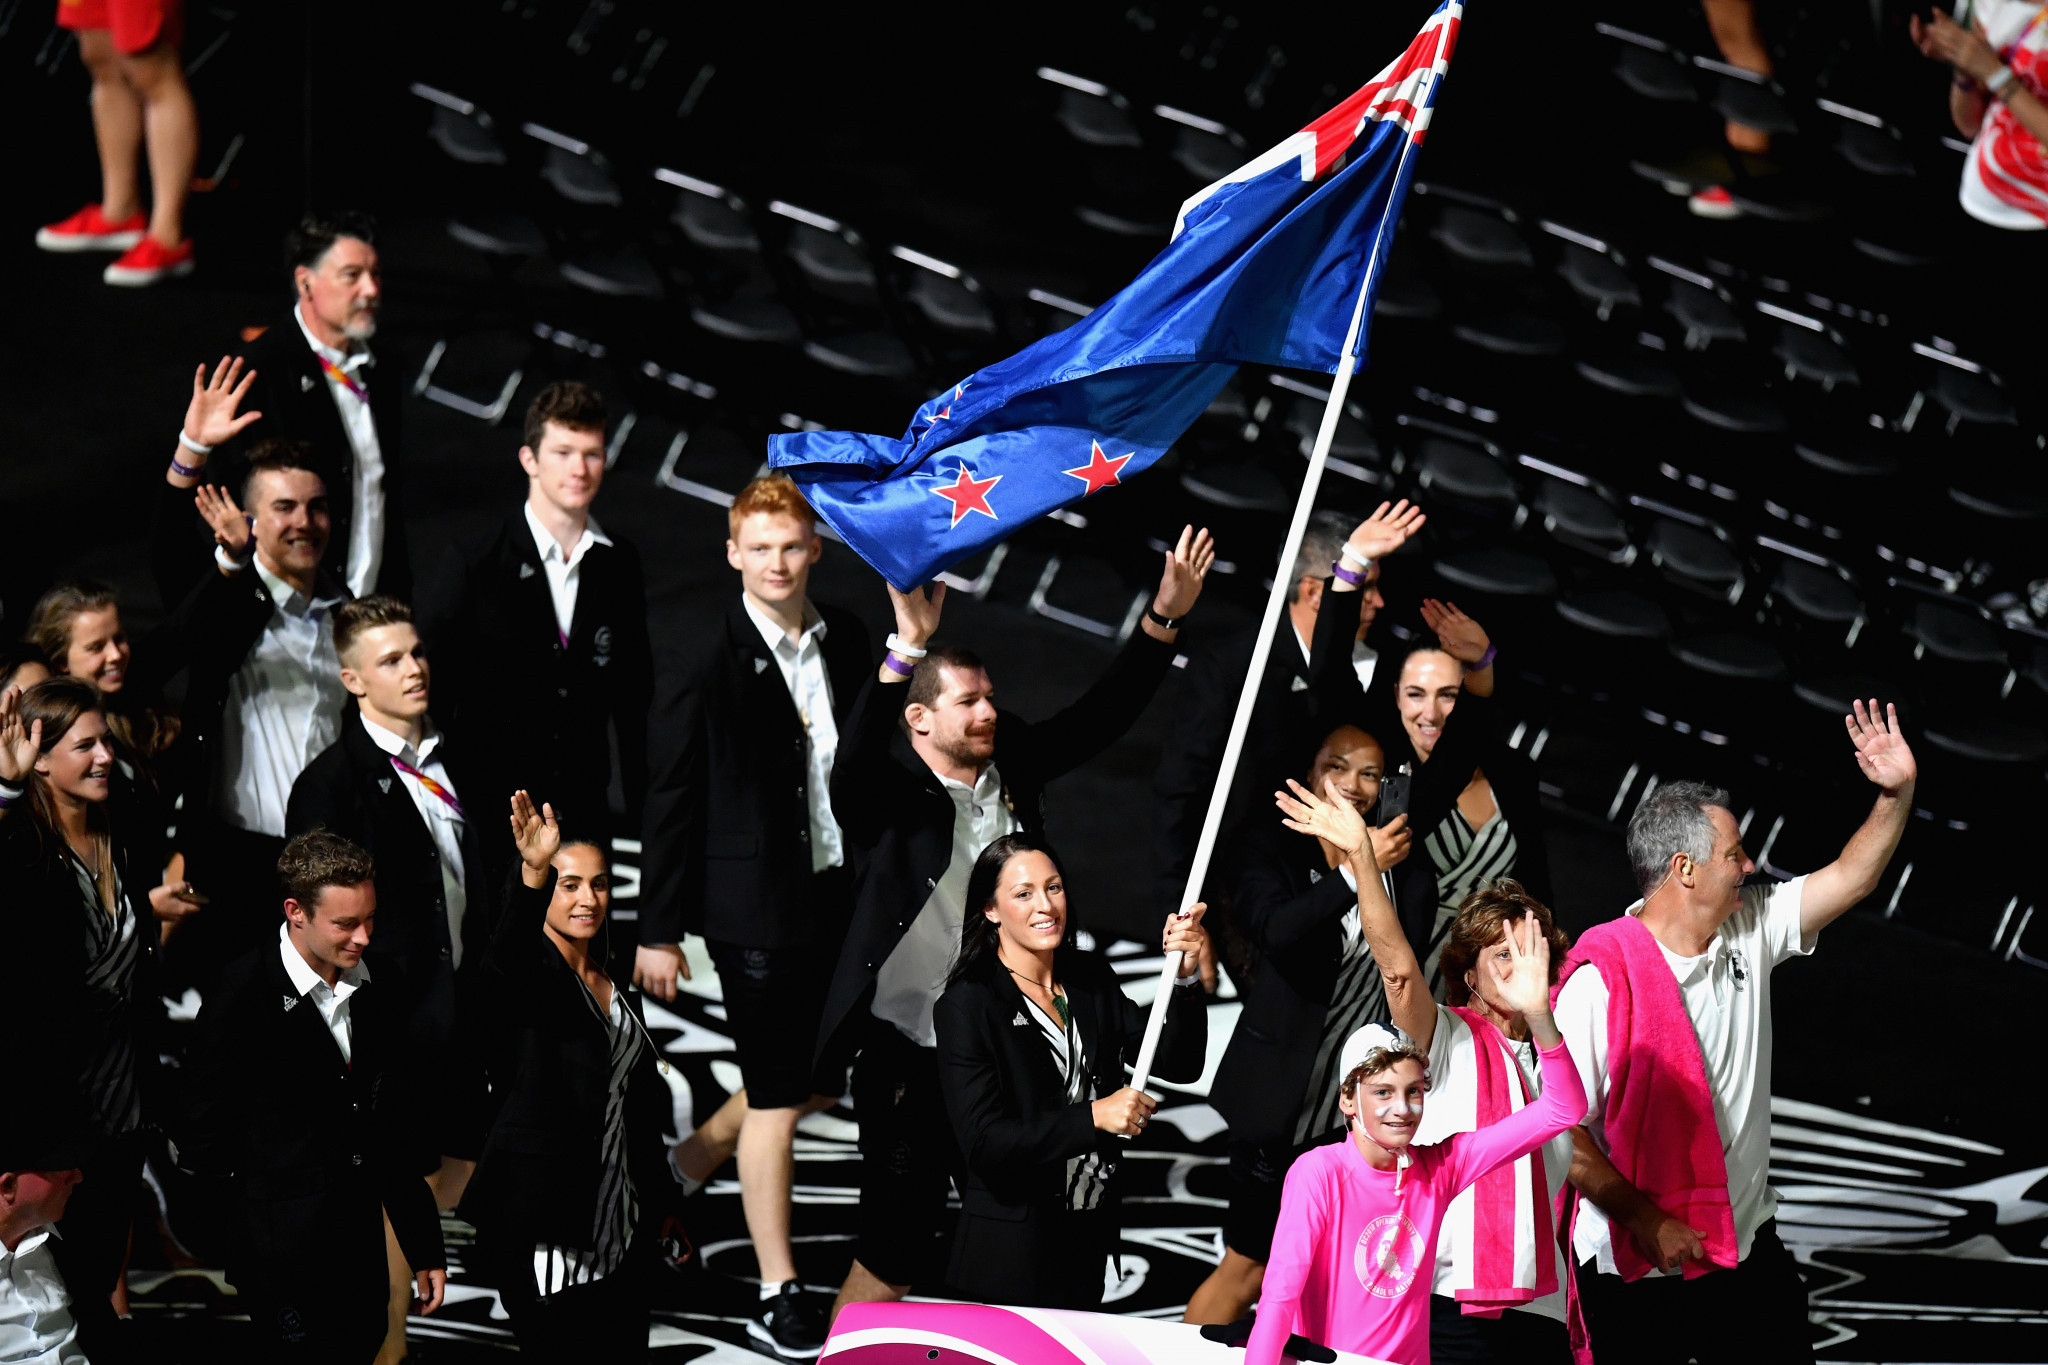 New Zealand launch search for new Chef de Mission for Birmingham 2022 after Waddell steps down